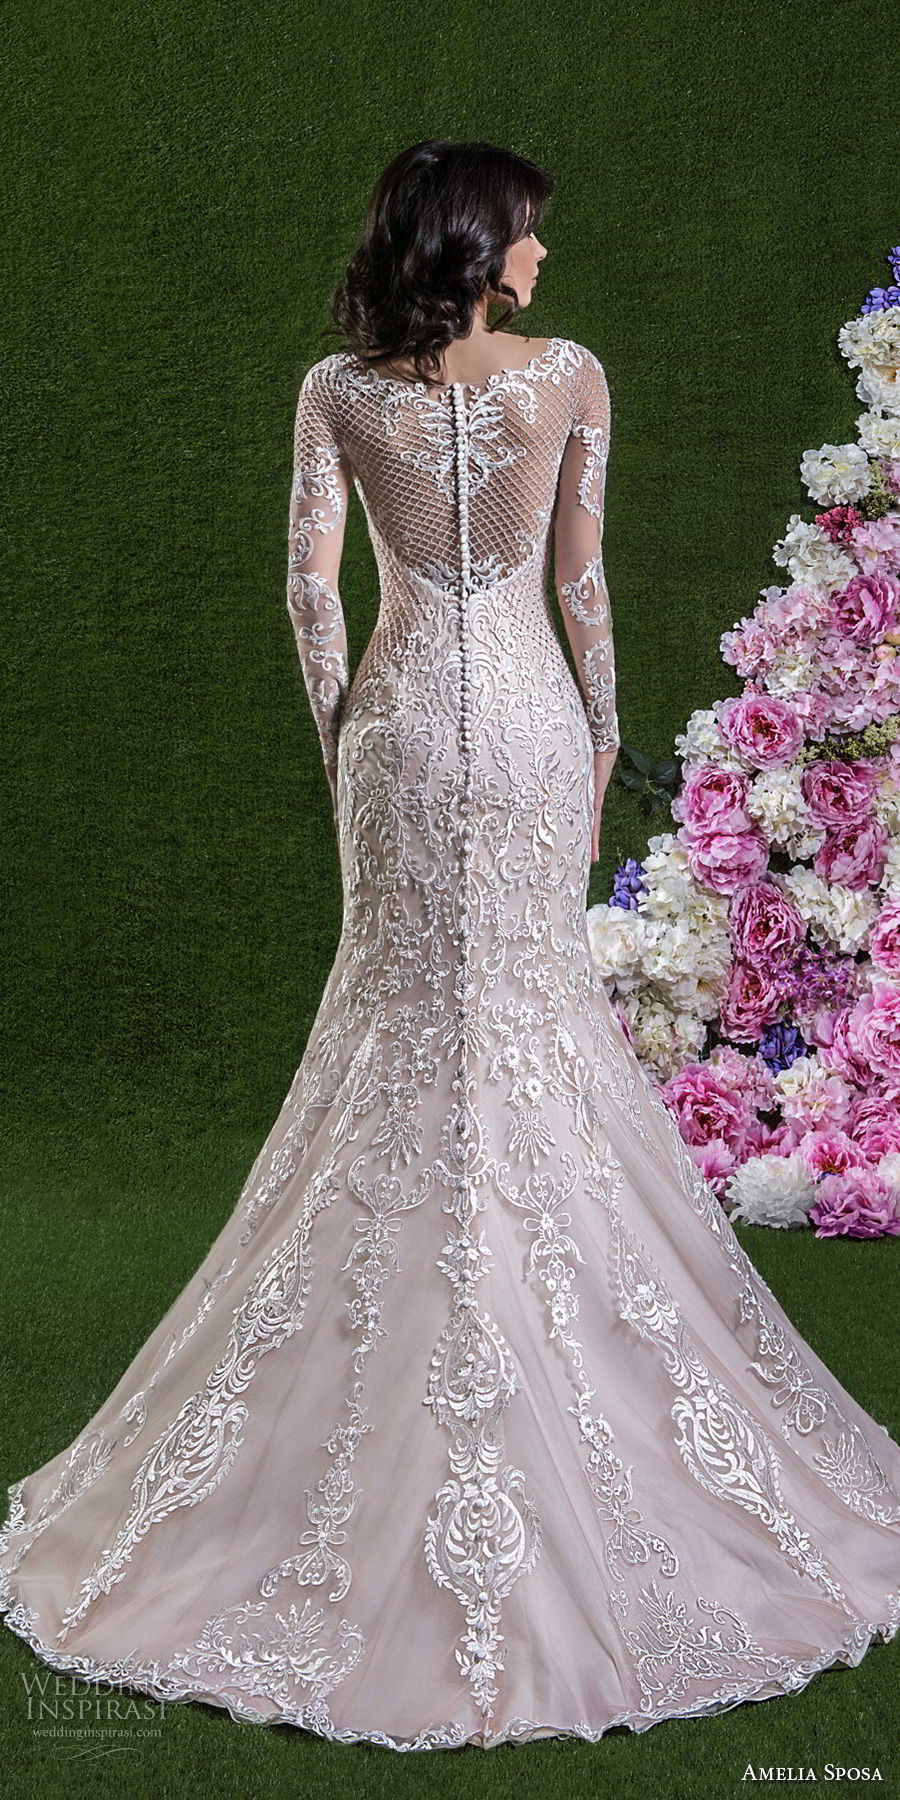 amelia sposa 2018 bridal long sleeves illusion bateau sweetheart neckline full embellishment elegant romantic pink trumpet wedding dress covered lace back medium train (cassandra) bv